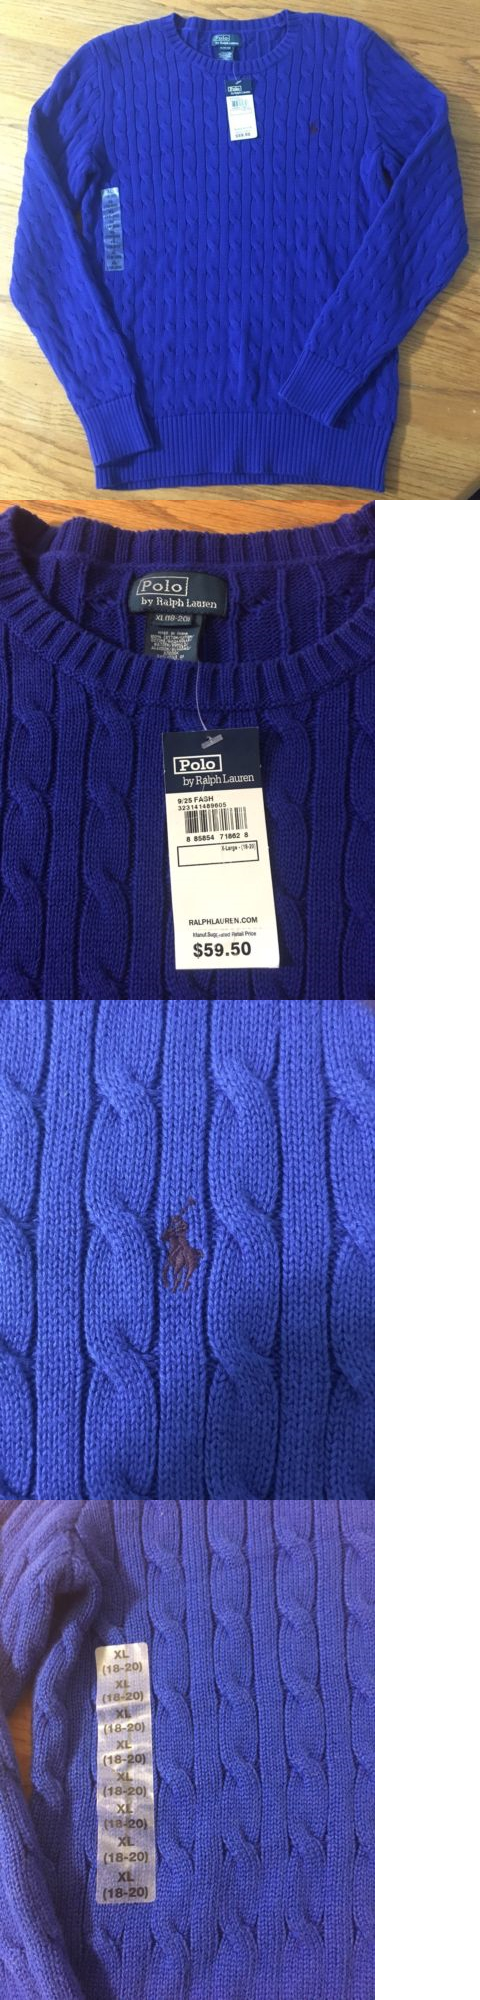 Sweaters 51946: Nwt Ralph Lauren Kids Boys Xl 18-20 Cable Knit ...